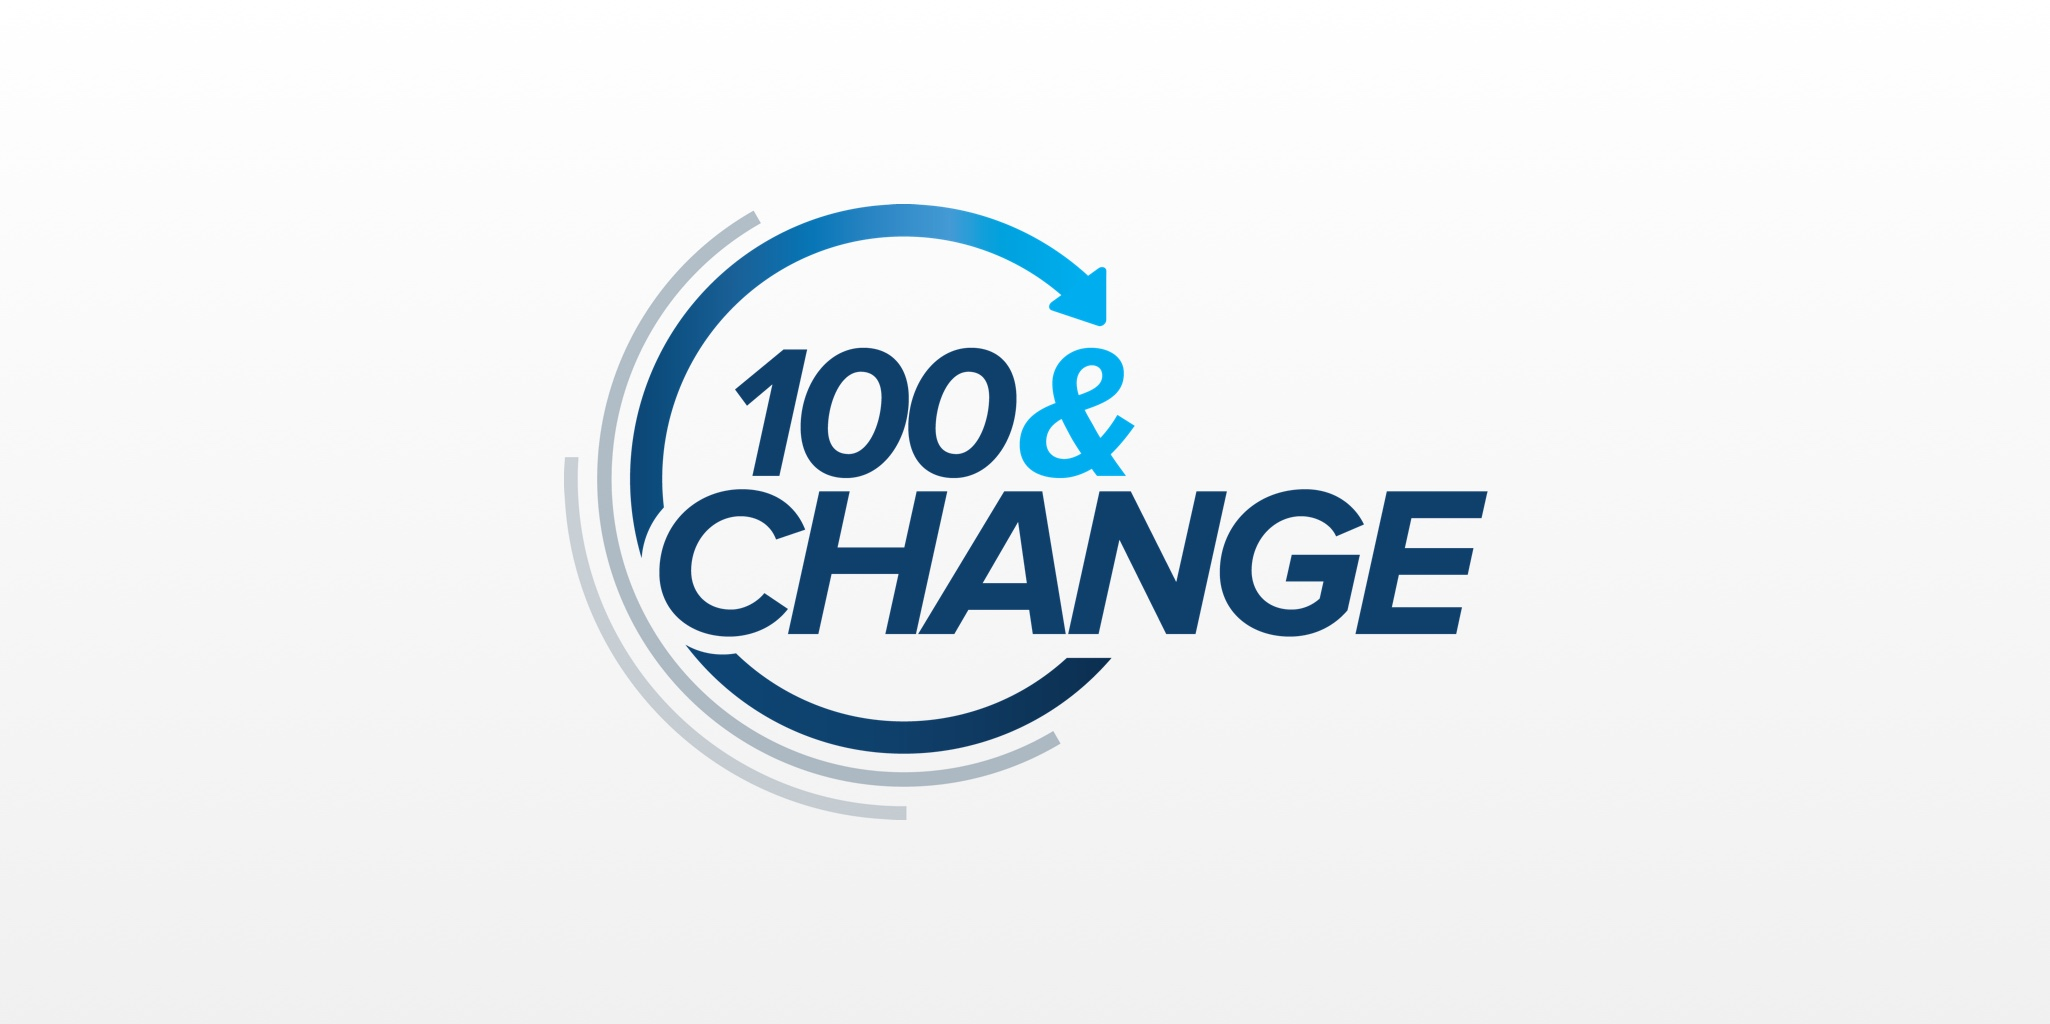 100&Change - Evaluation